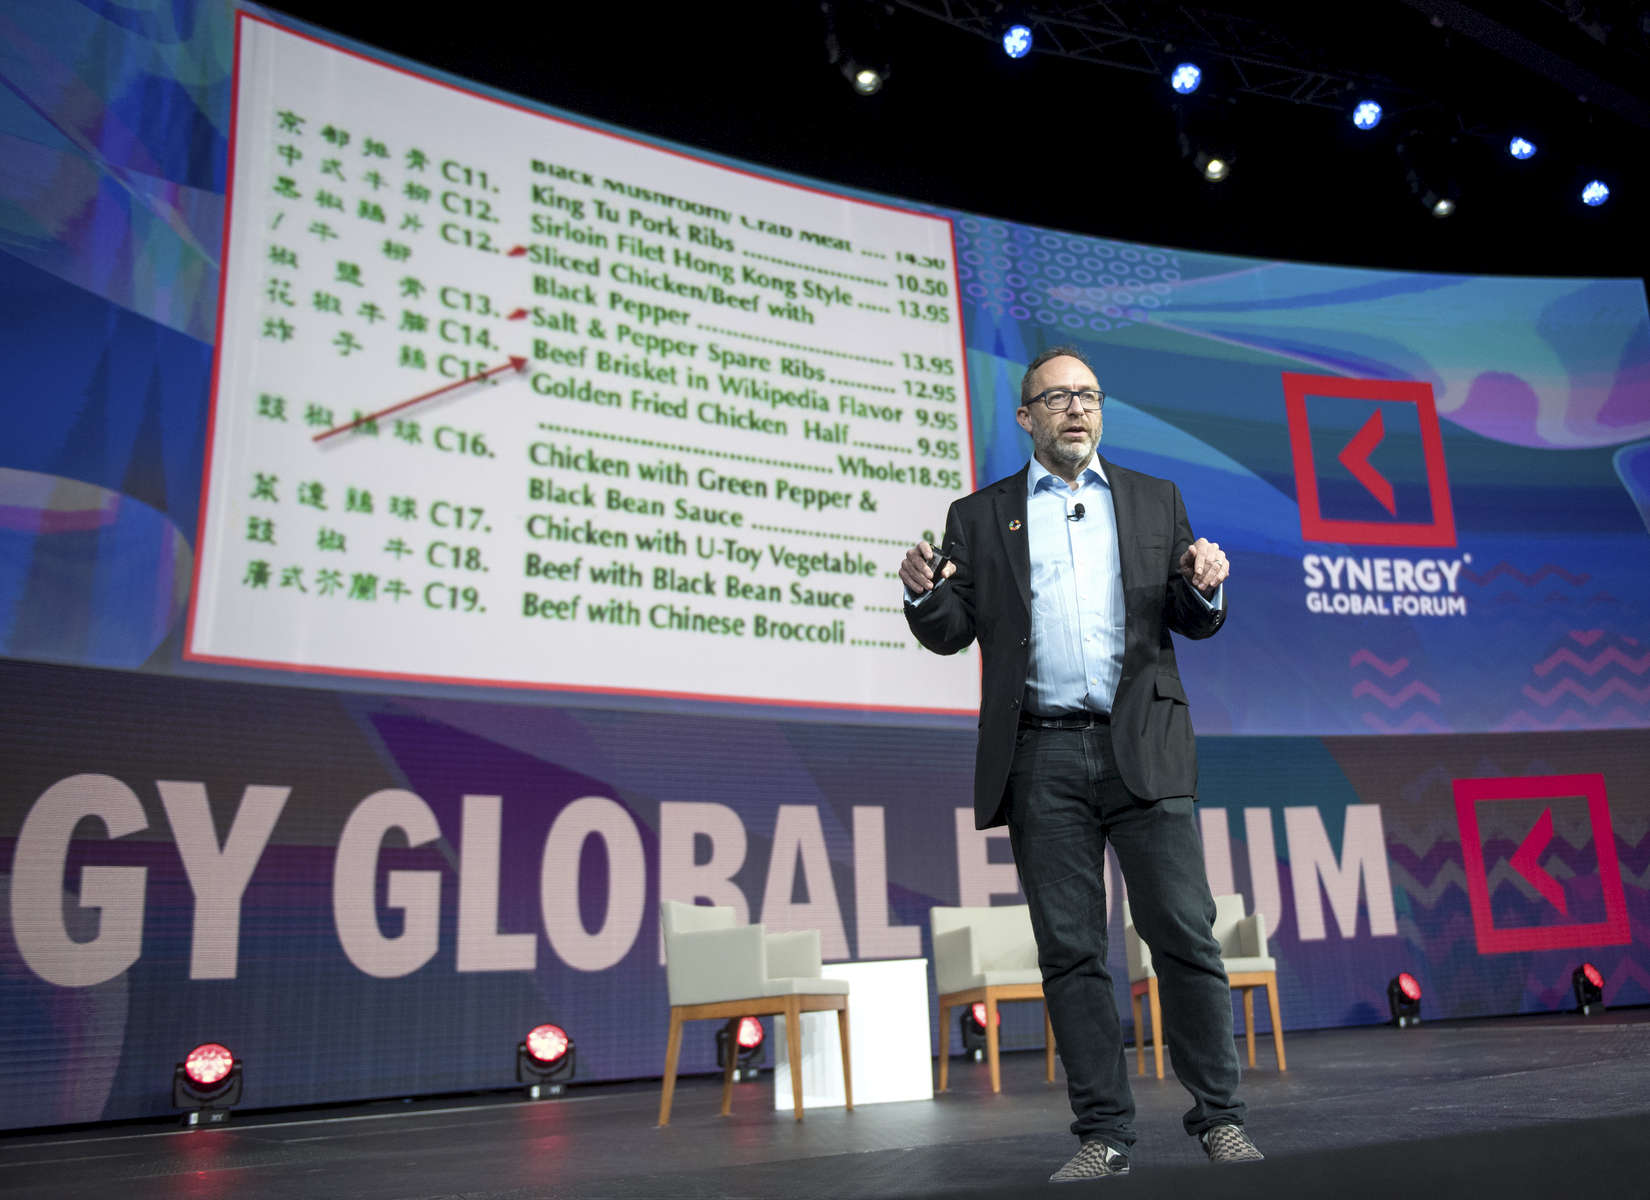 Jimmy Wales is speaking at the Synergy Global Forum NY at The Theater at Madison Square Garden October 28, 2017. Photo by Ron Wyatt Photography